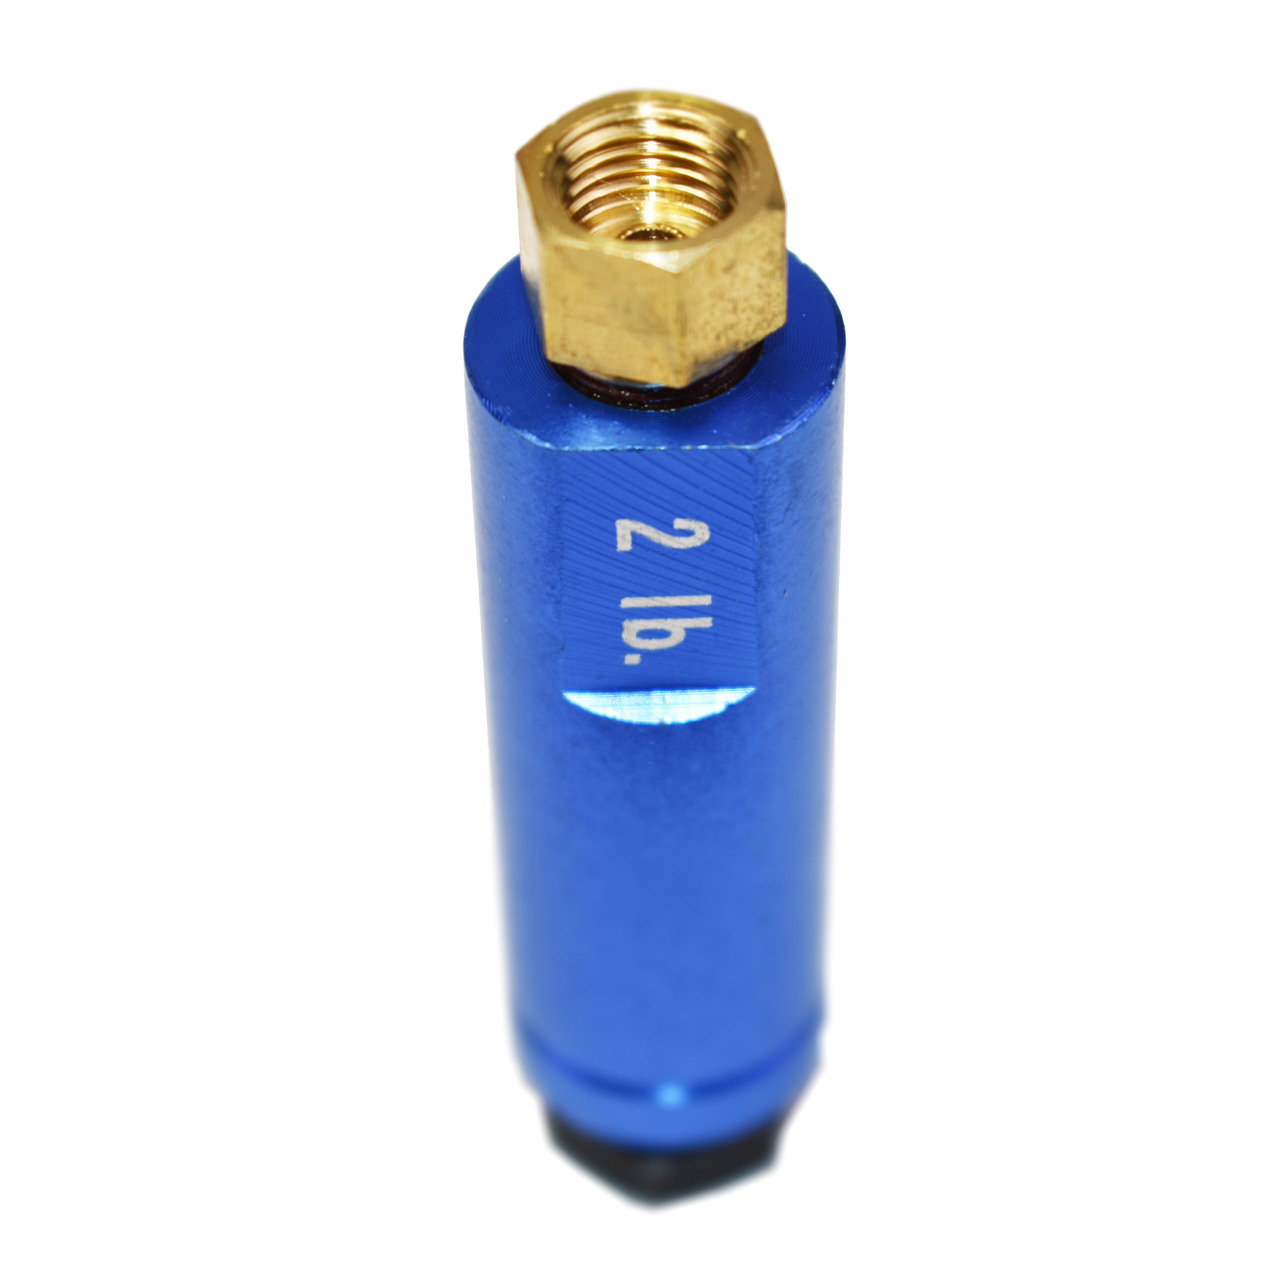 "A-Team Performance 3/8"" FITTINGS RESIDUAL CHECK VALVE BLUE - 2 lbs. (DISC BRAKES)"